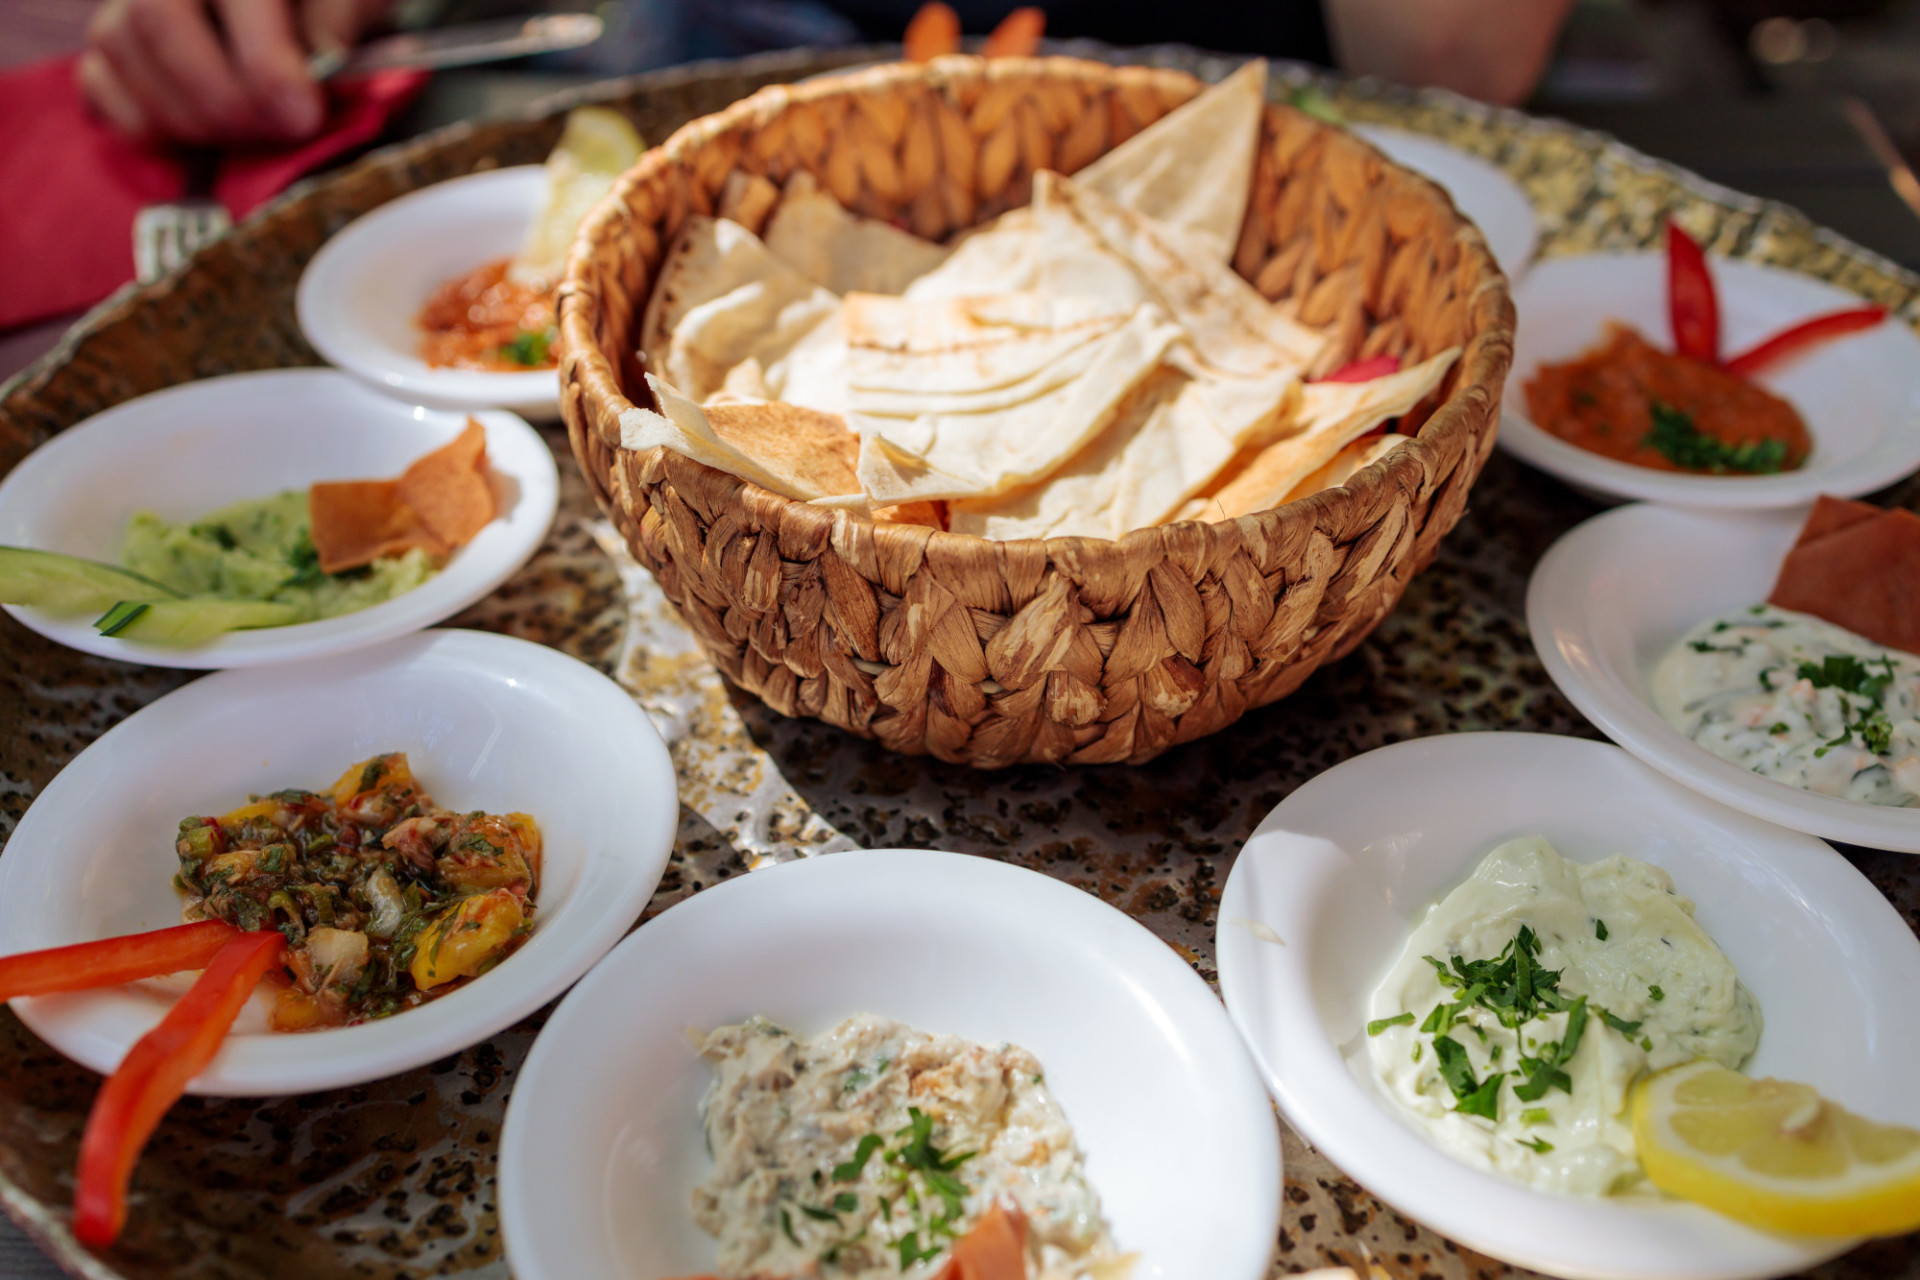 Arabic appetizer plate with dips and pita bread